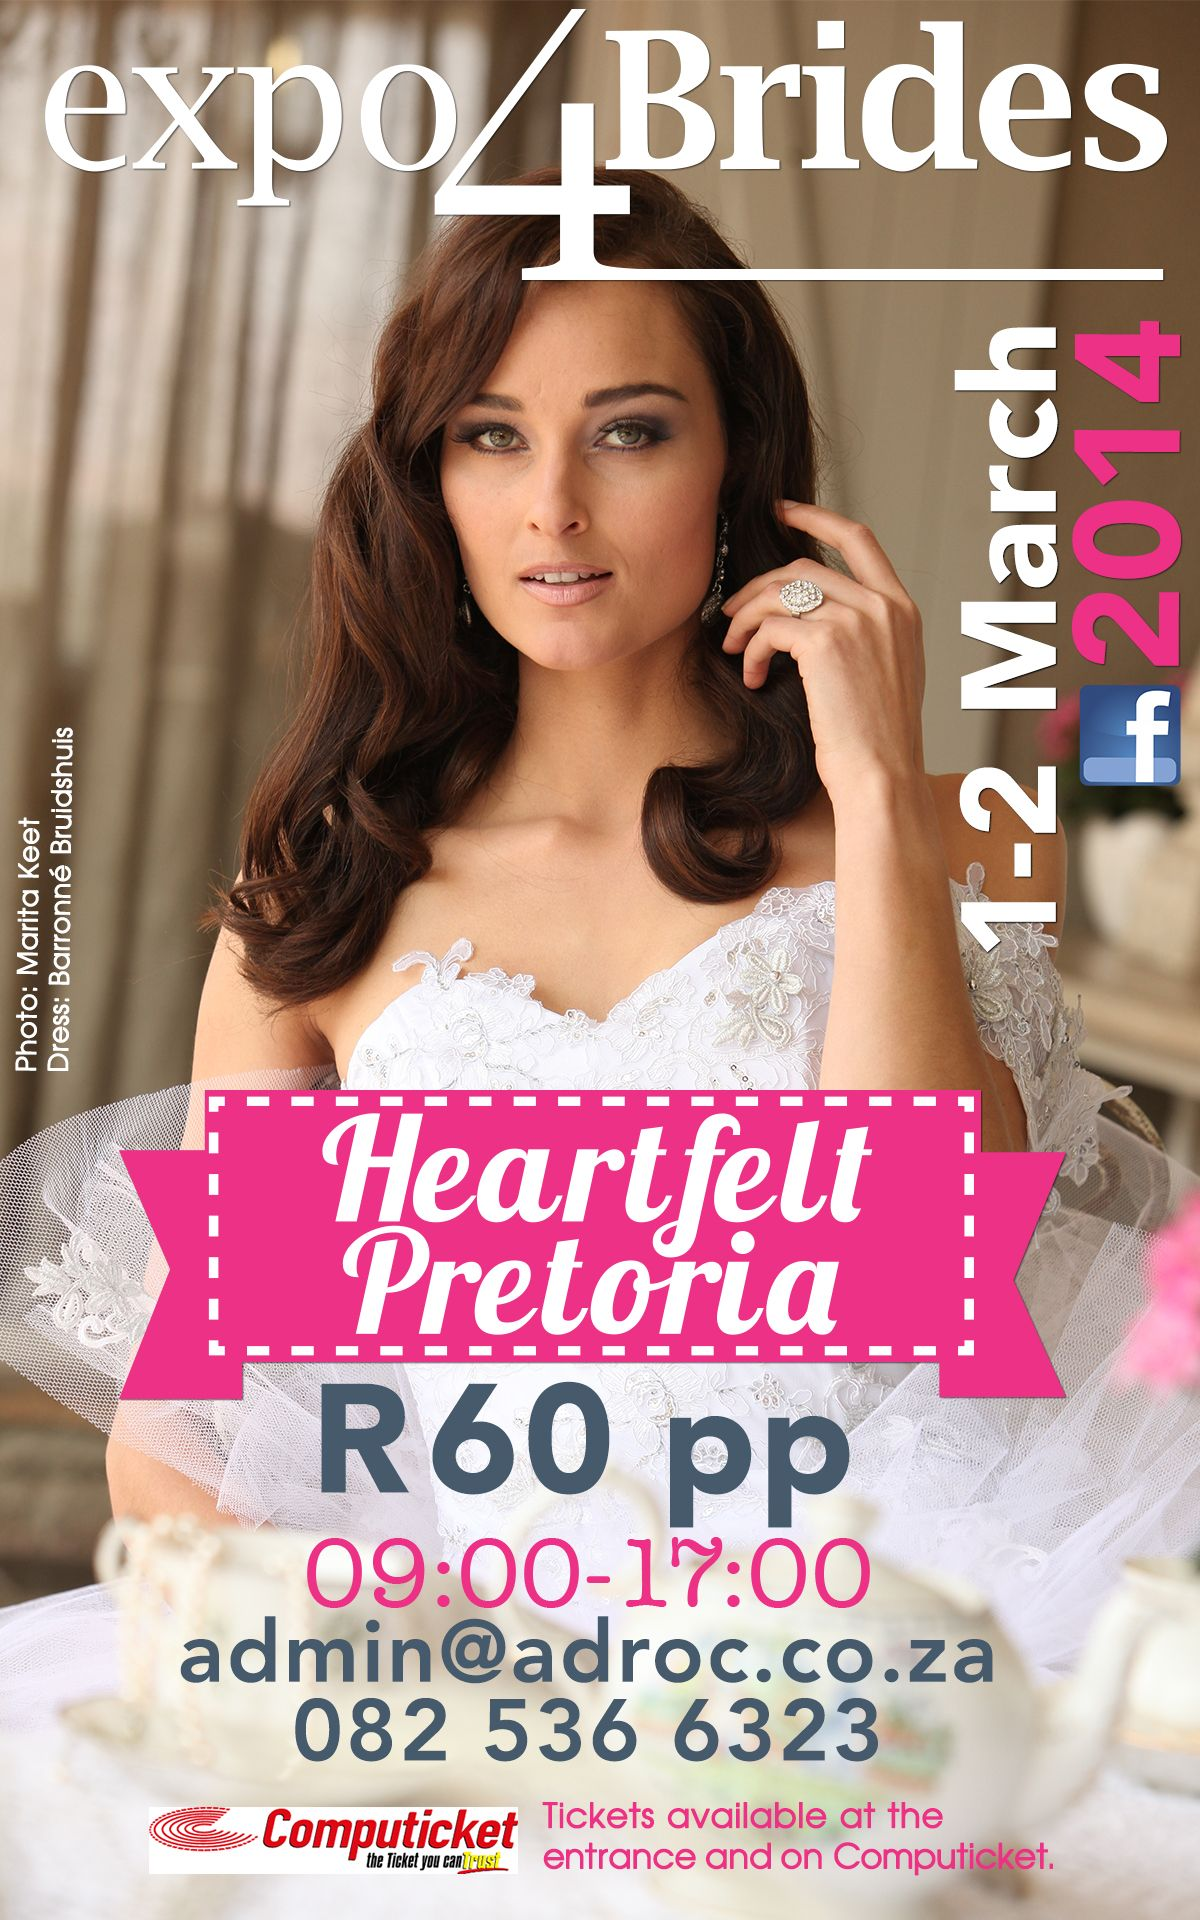 Don't miss out on Pretoria's biggest BRIDAL EXPO! 1-2 March 2014. 9:00-17:00. Heartfelt Arena. R 60 per person. Tickets available at entrance or on www.computicket.com.